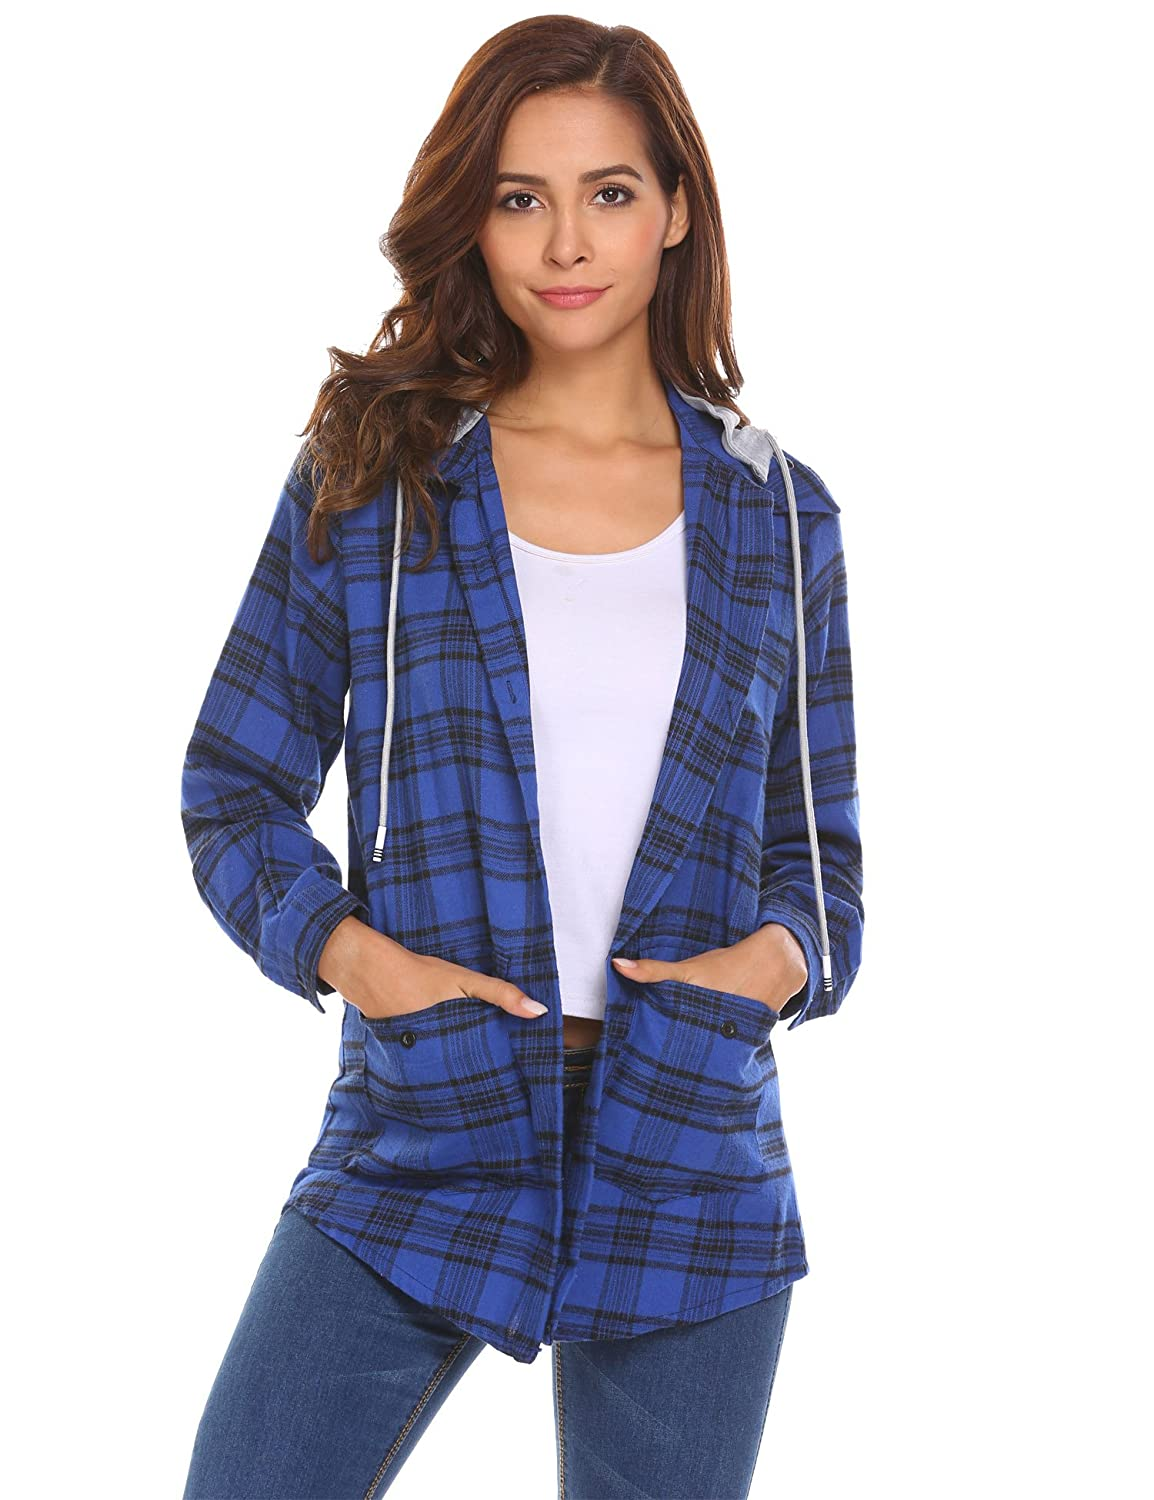 84ac6652281 Top 10 wholesale Womens Button Up Flannel Shirts - Chinabrands.com